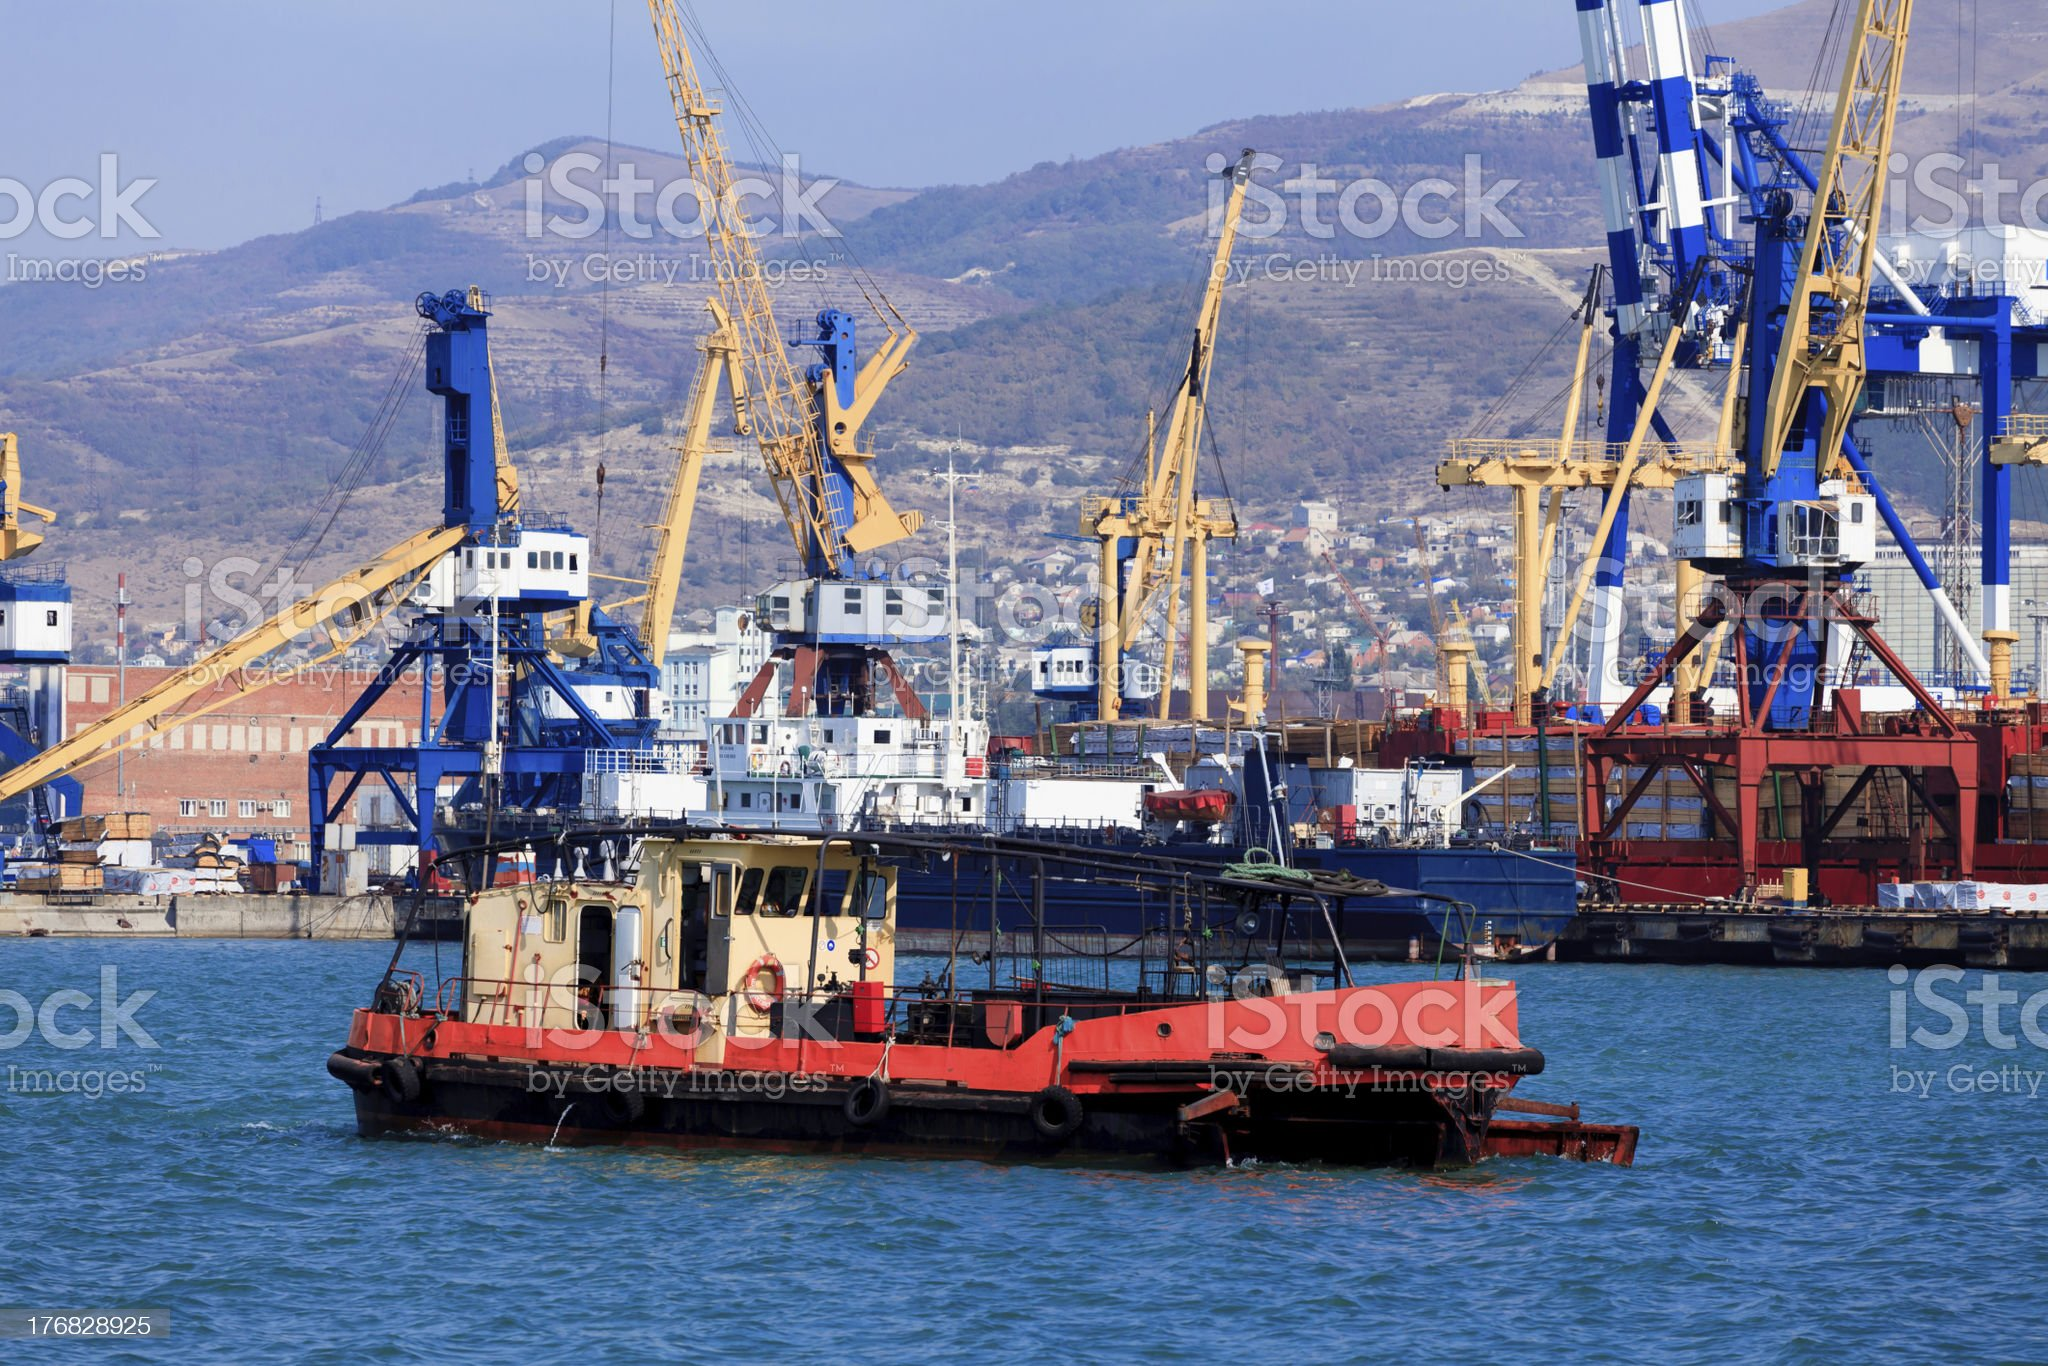 Ships in a port royalty-free stock photo